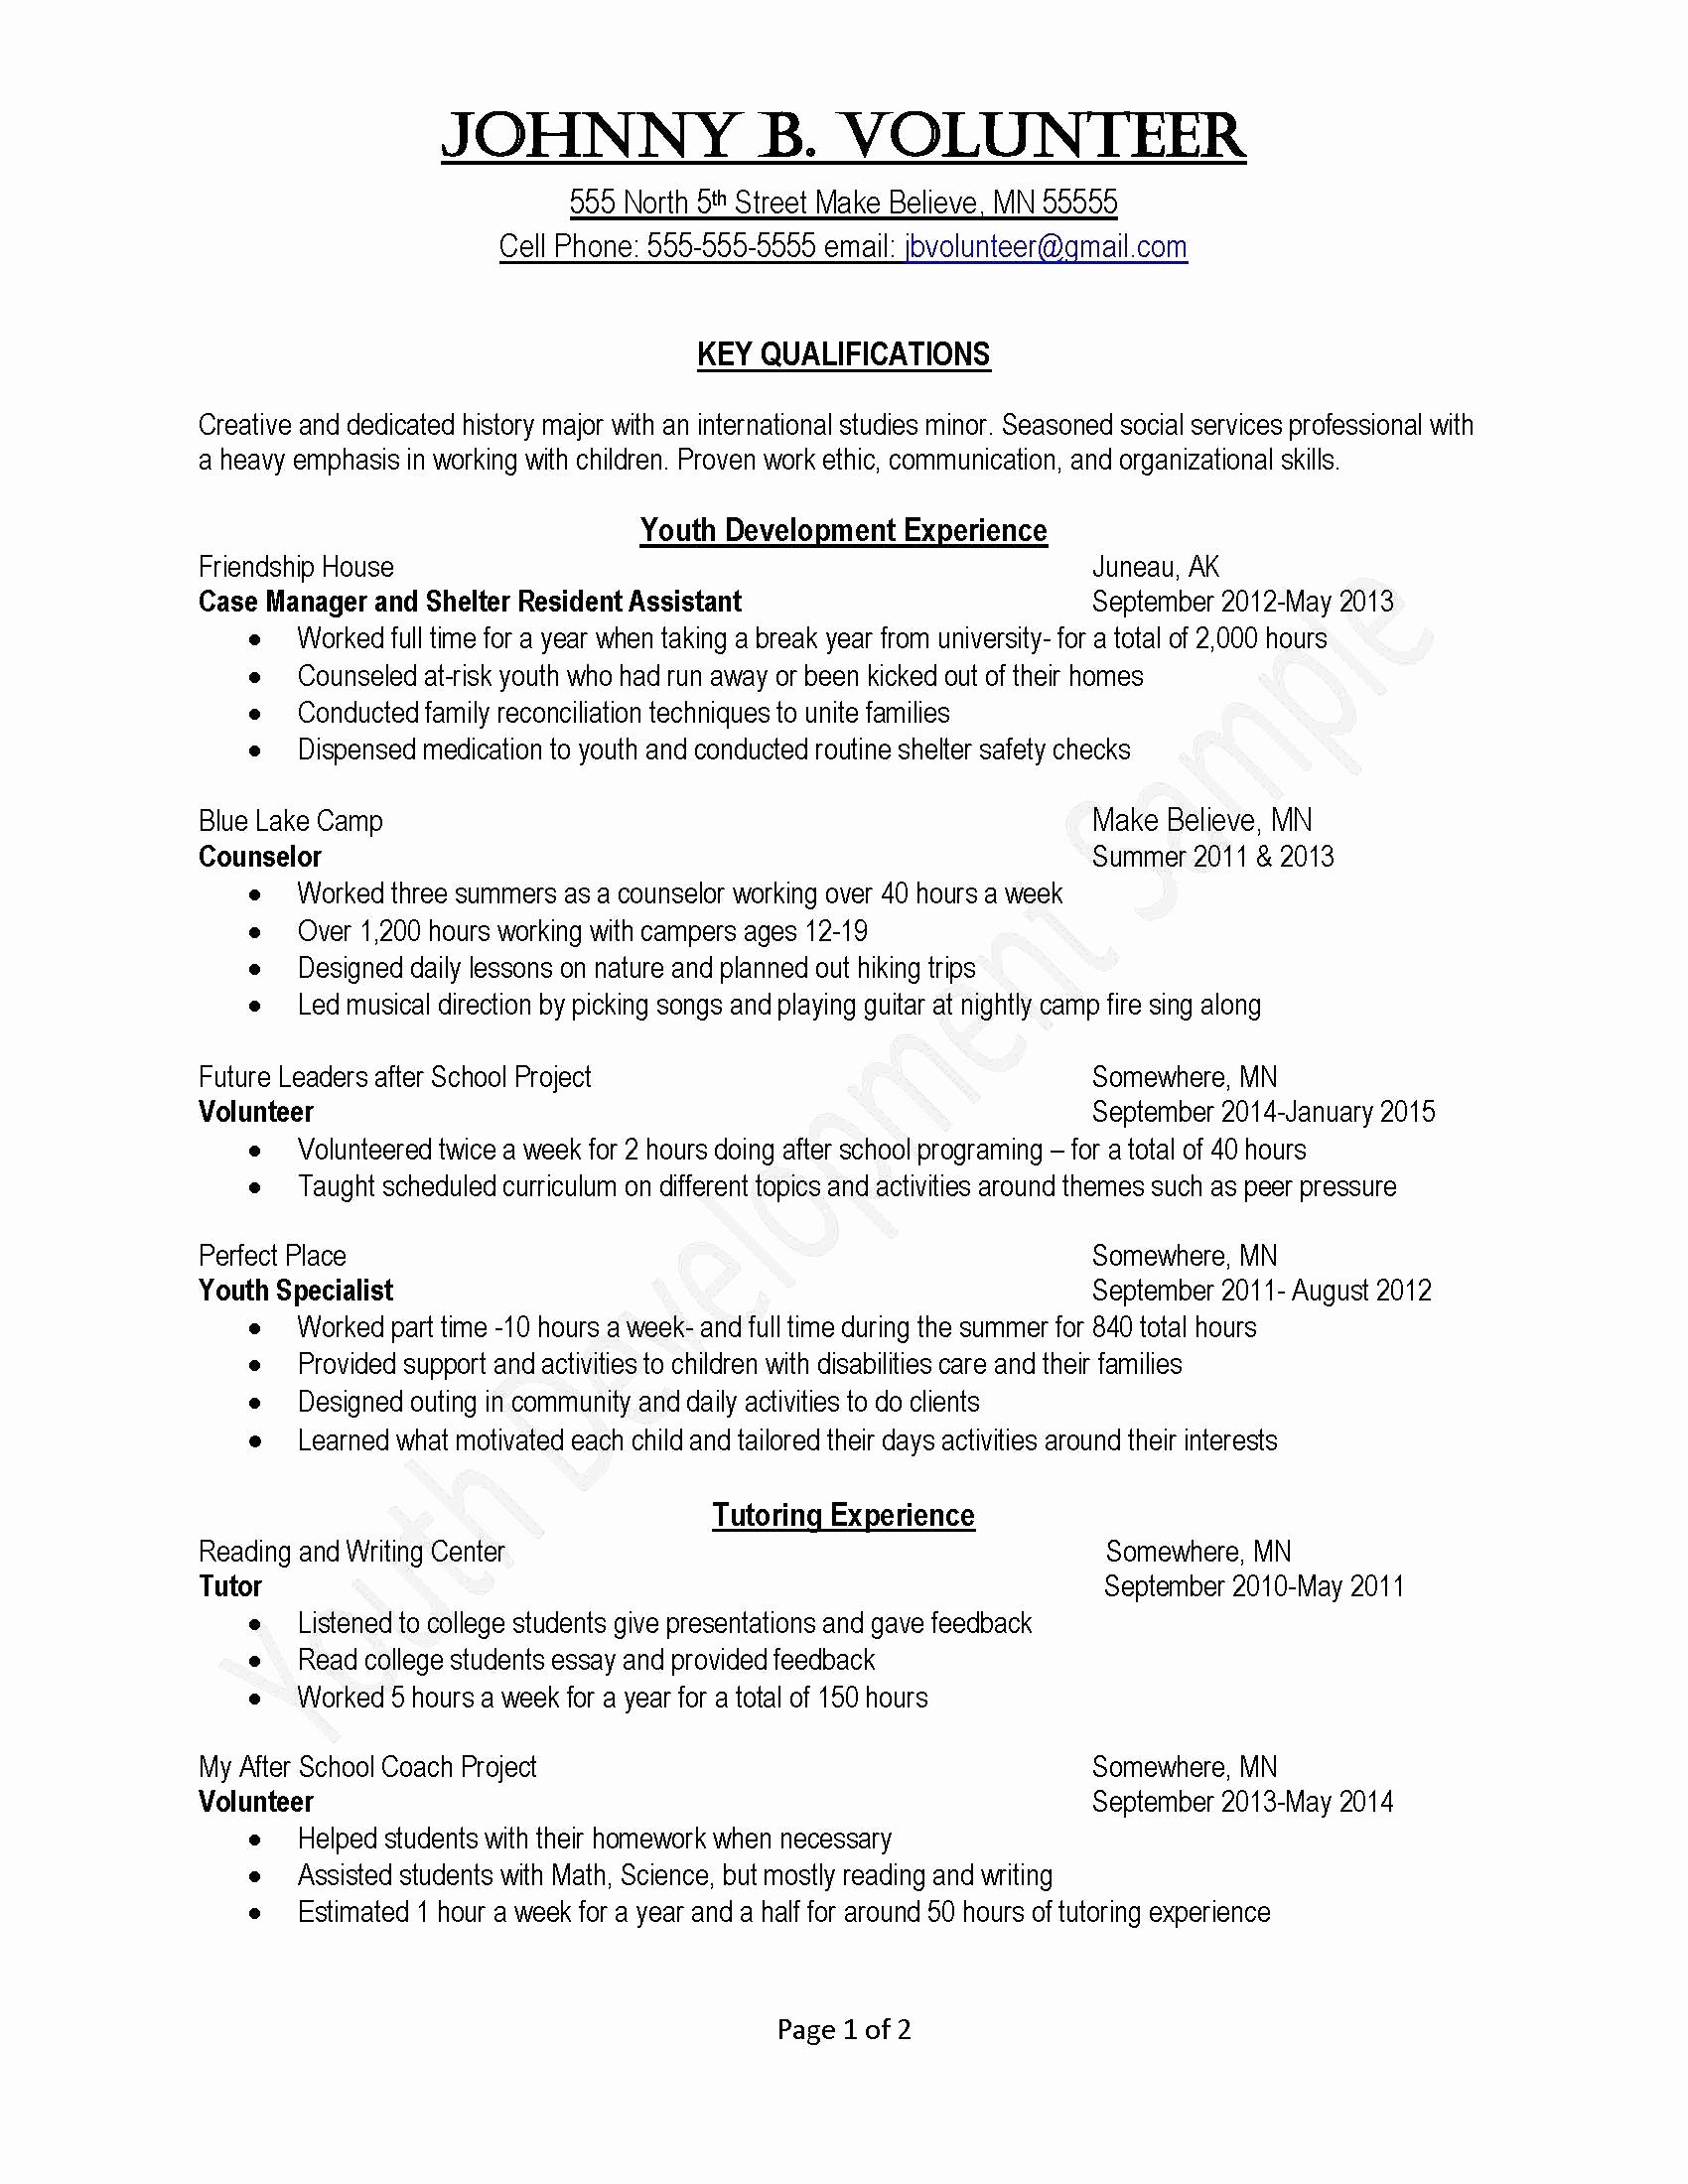 Paralegal Cover Letter Template - Paralegal Cover Letter Inspirational Od Consultant Cover Letter